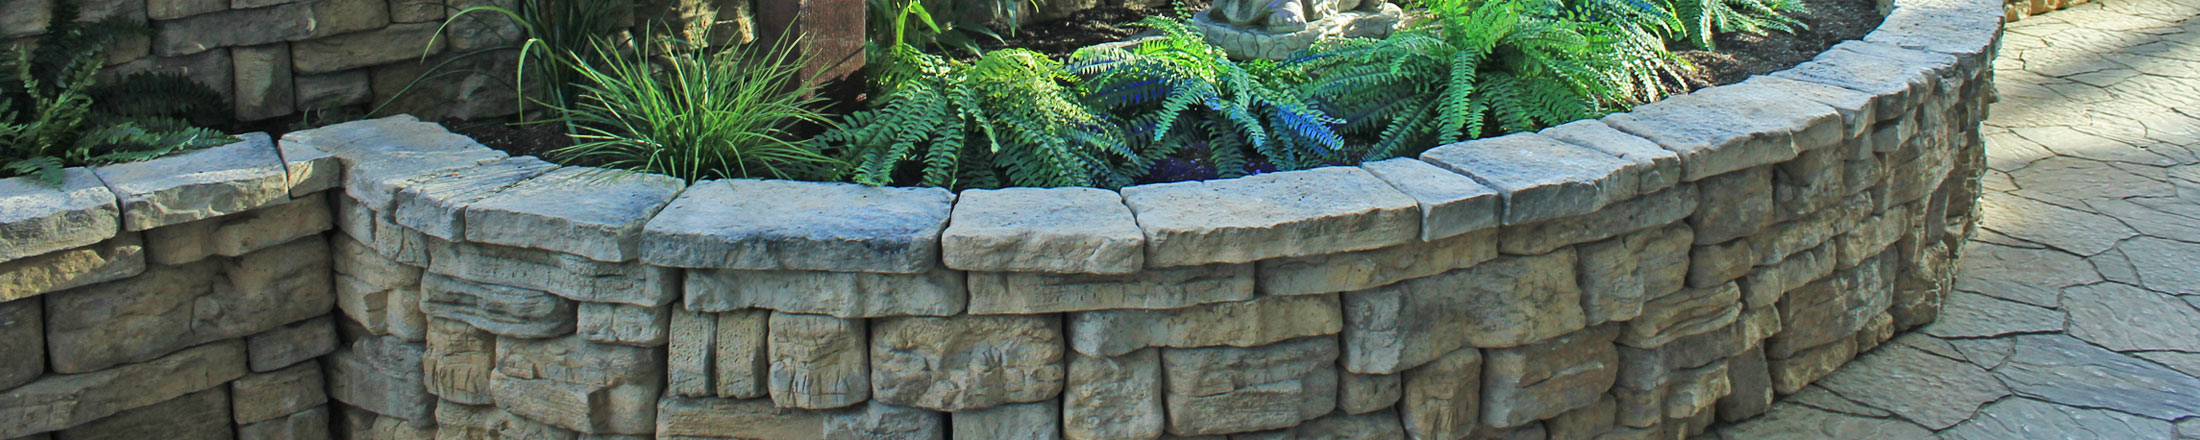 RetainingWalls Header 3